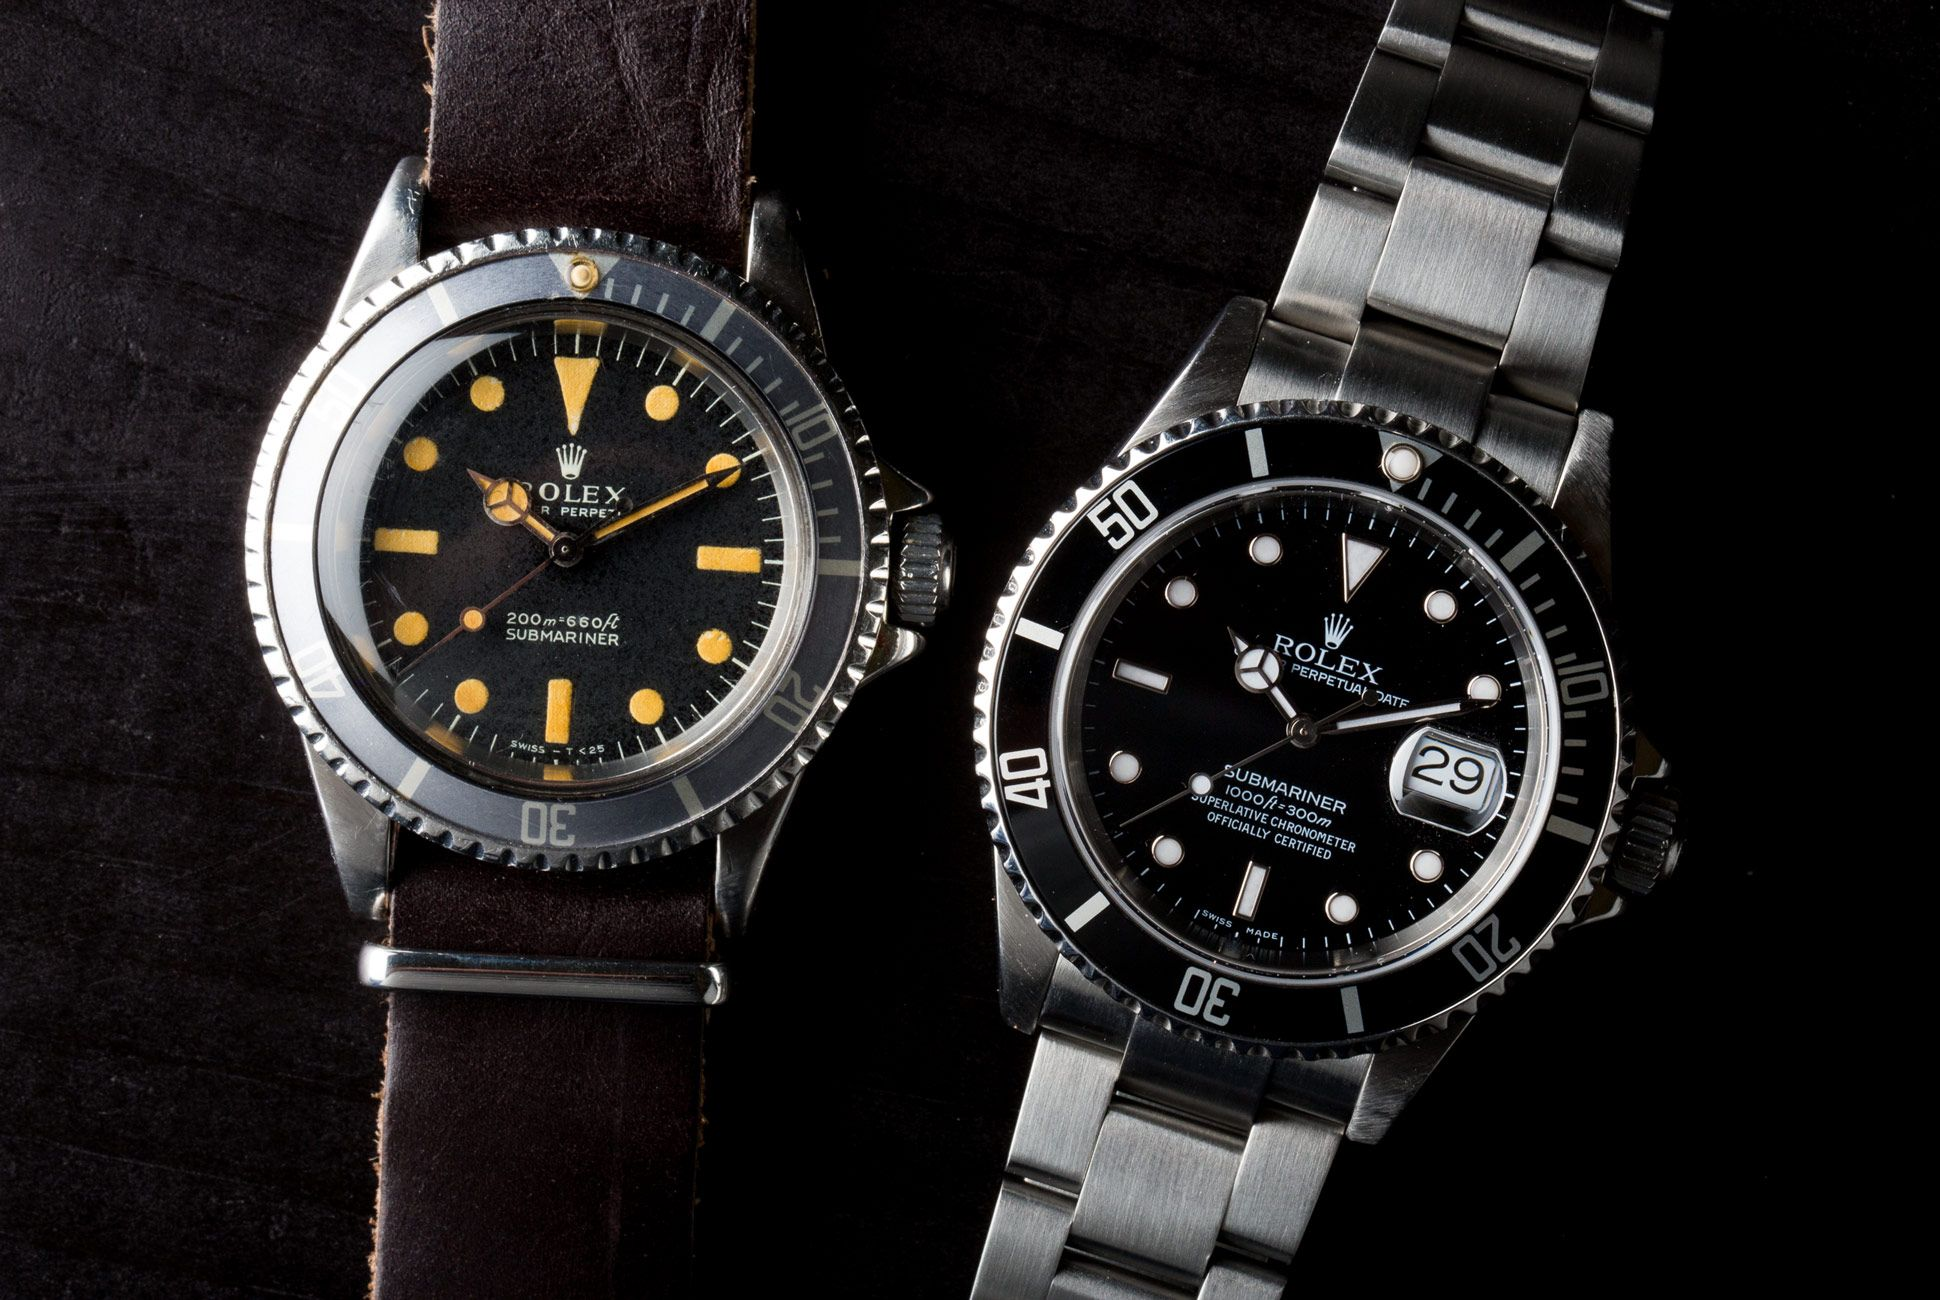 marlin leather gallery s iconic photos watch get it wound gq timex hand strap small watches to best into under time